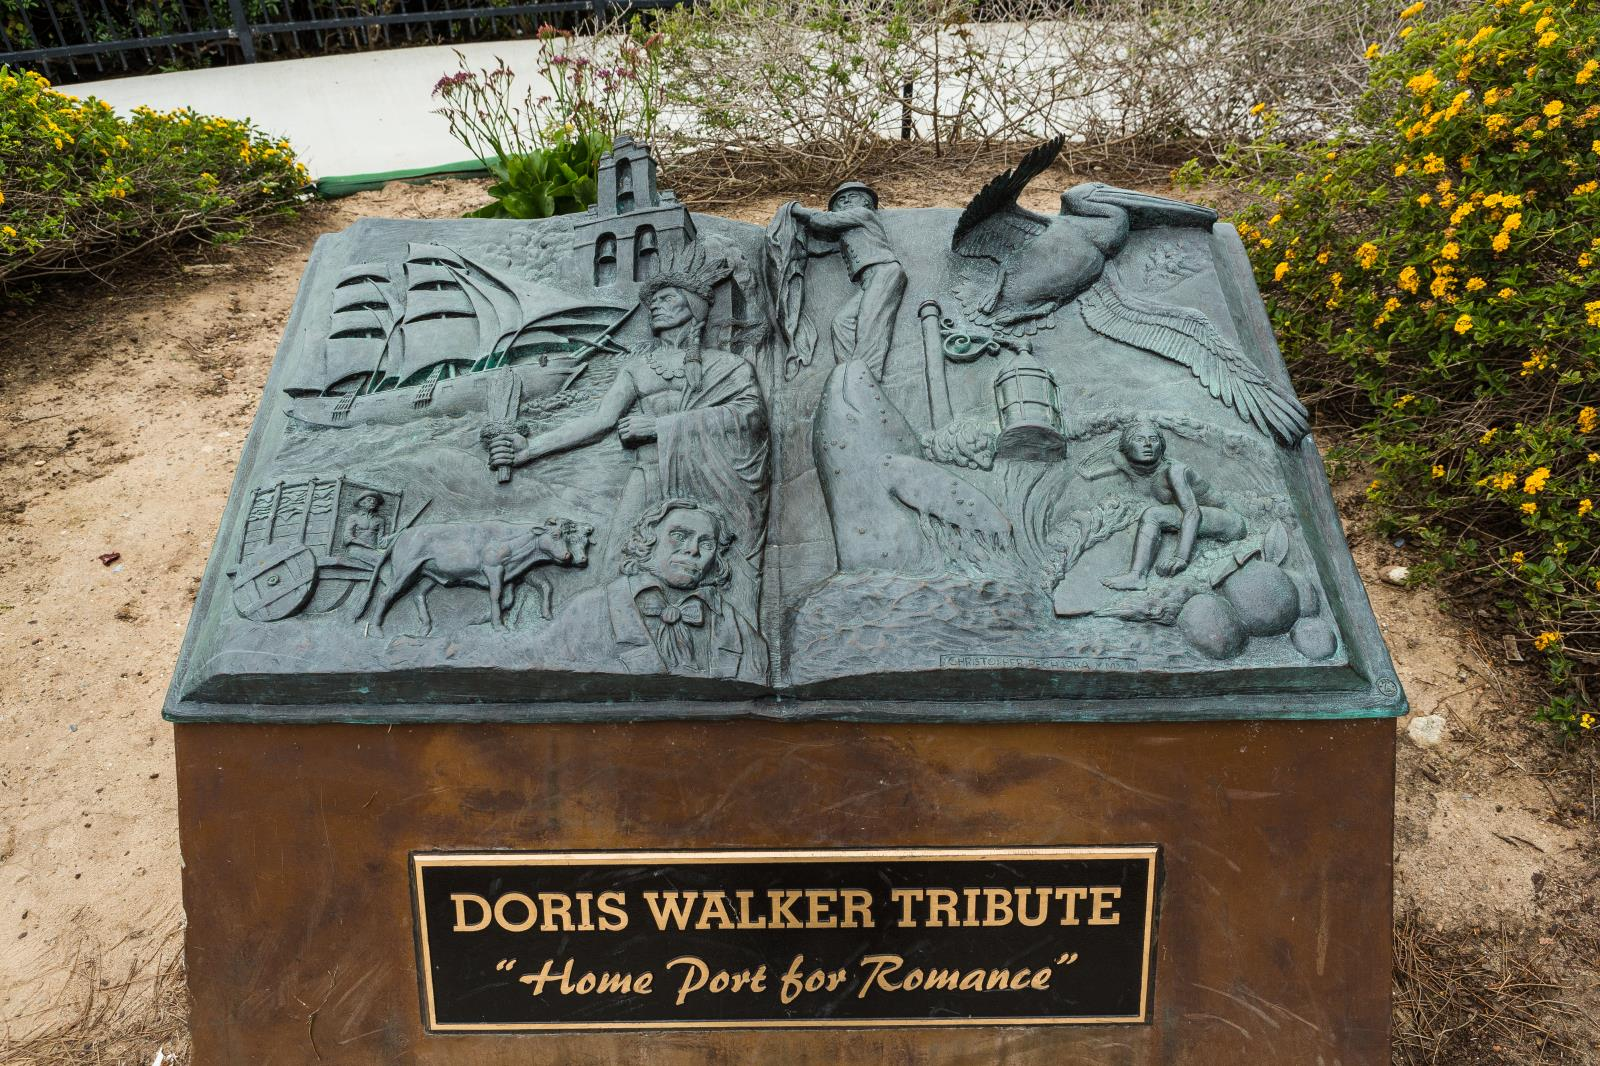 Doris Walker